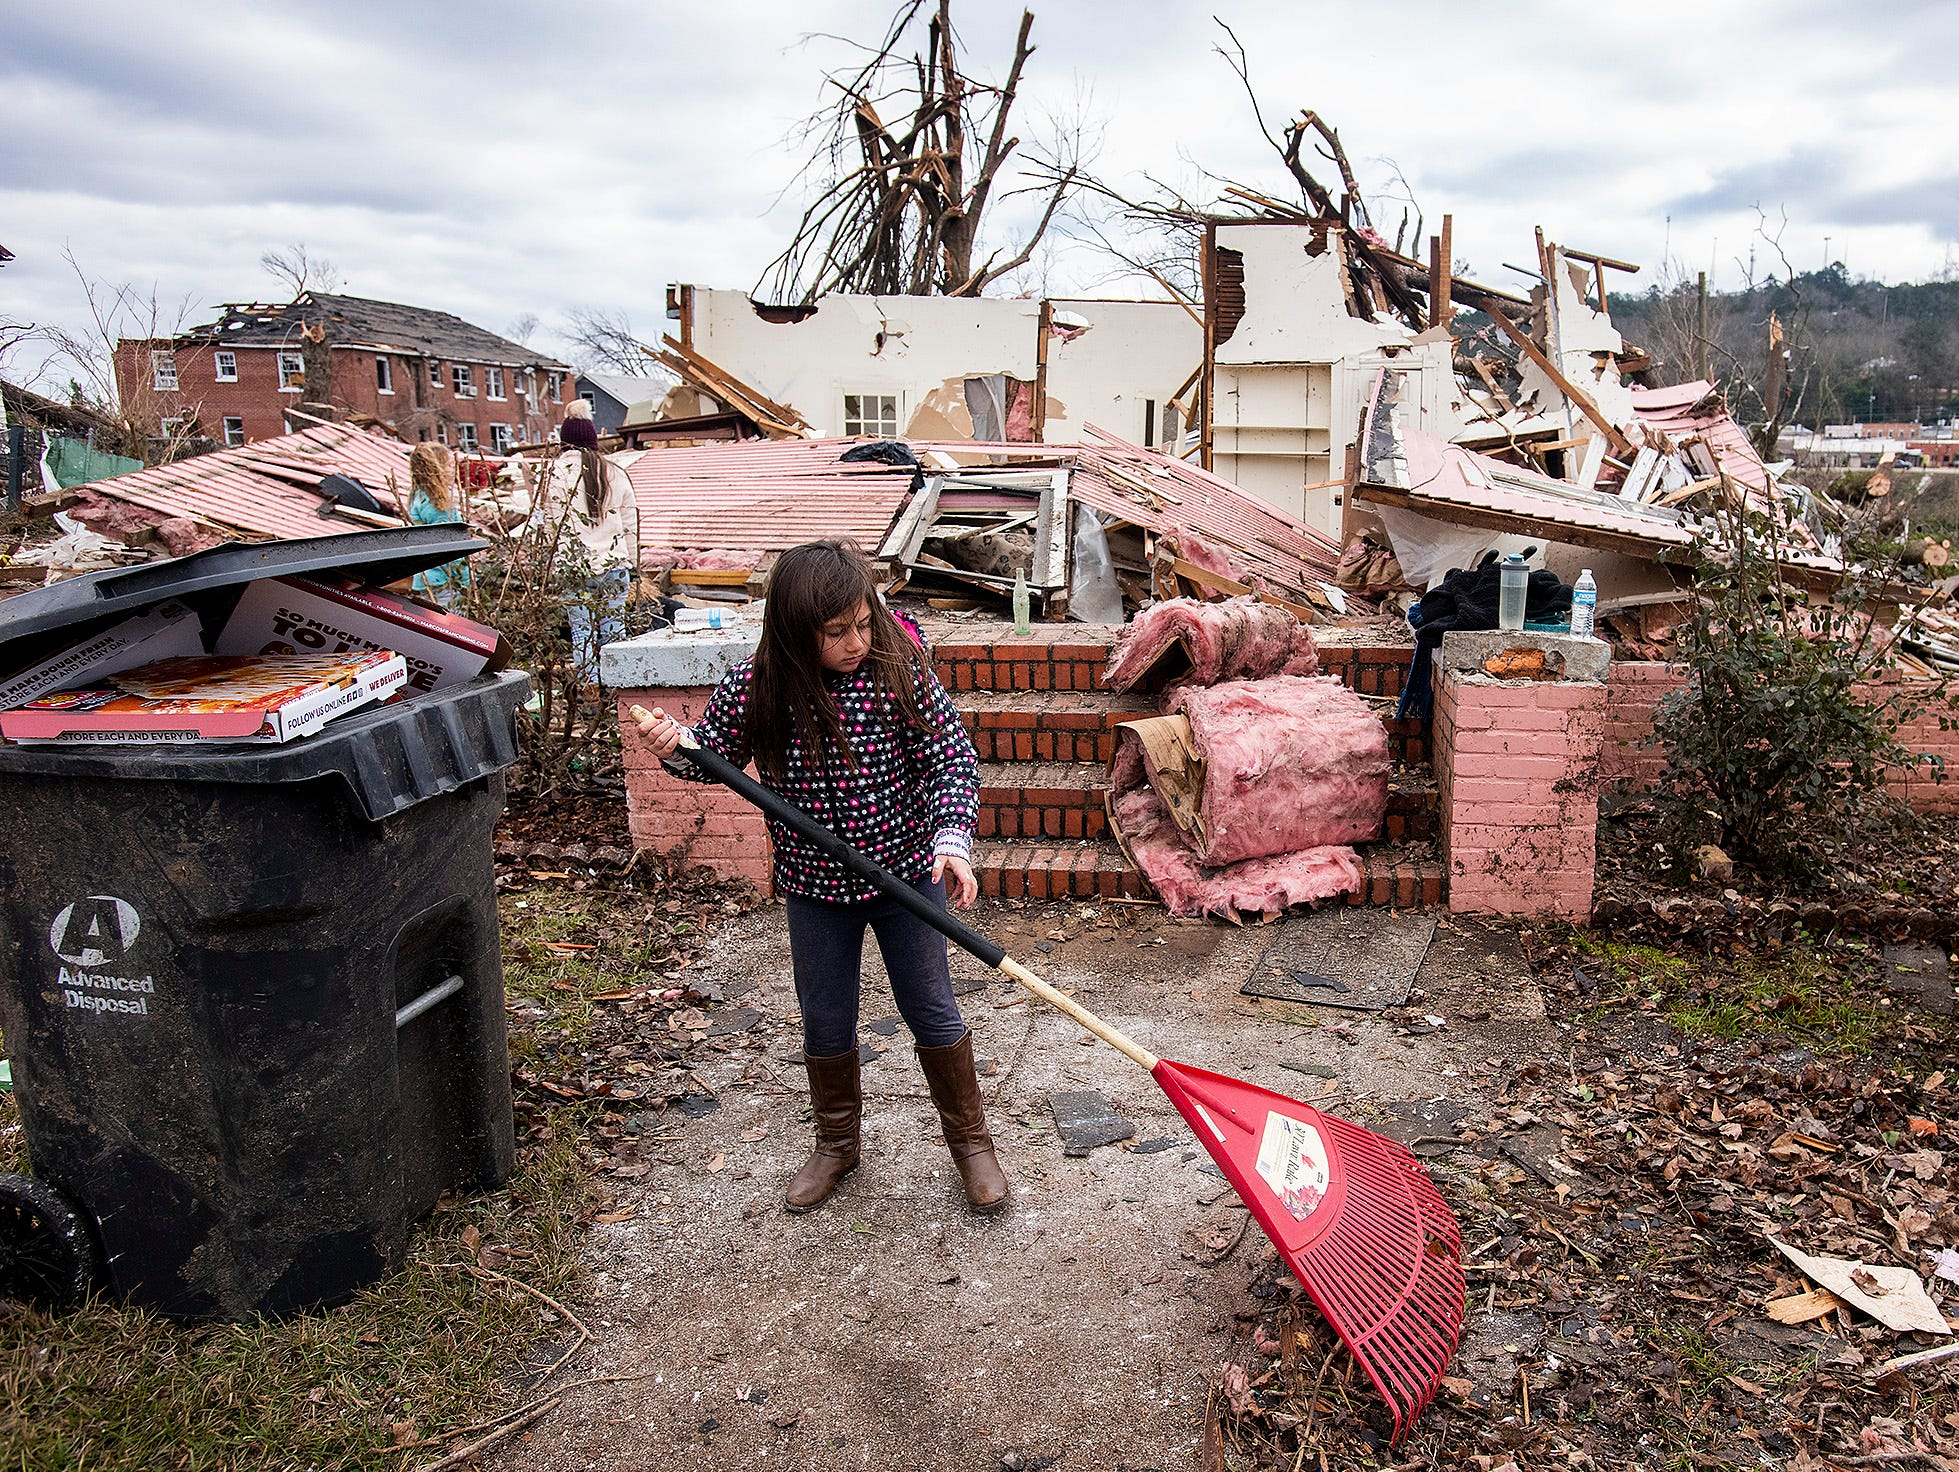 Young volunteer Brantley Bozeman helps clean up debris on Sunday January 20, 2019, after a tornado hit Wetumpka, Ala., on Saturday afternoon.